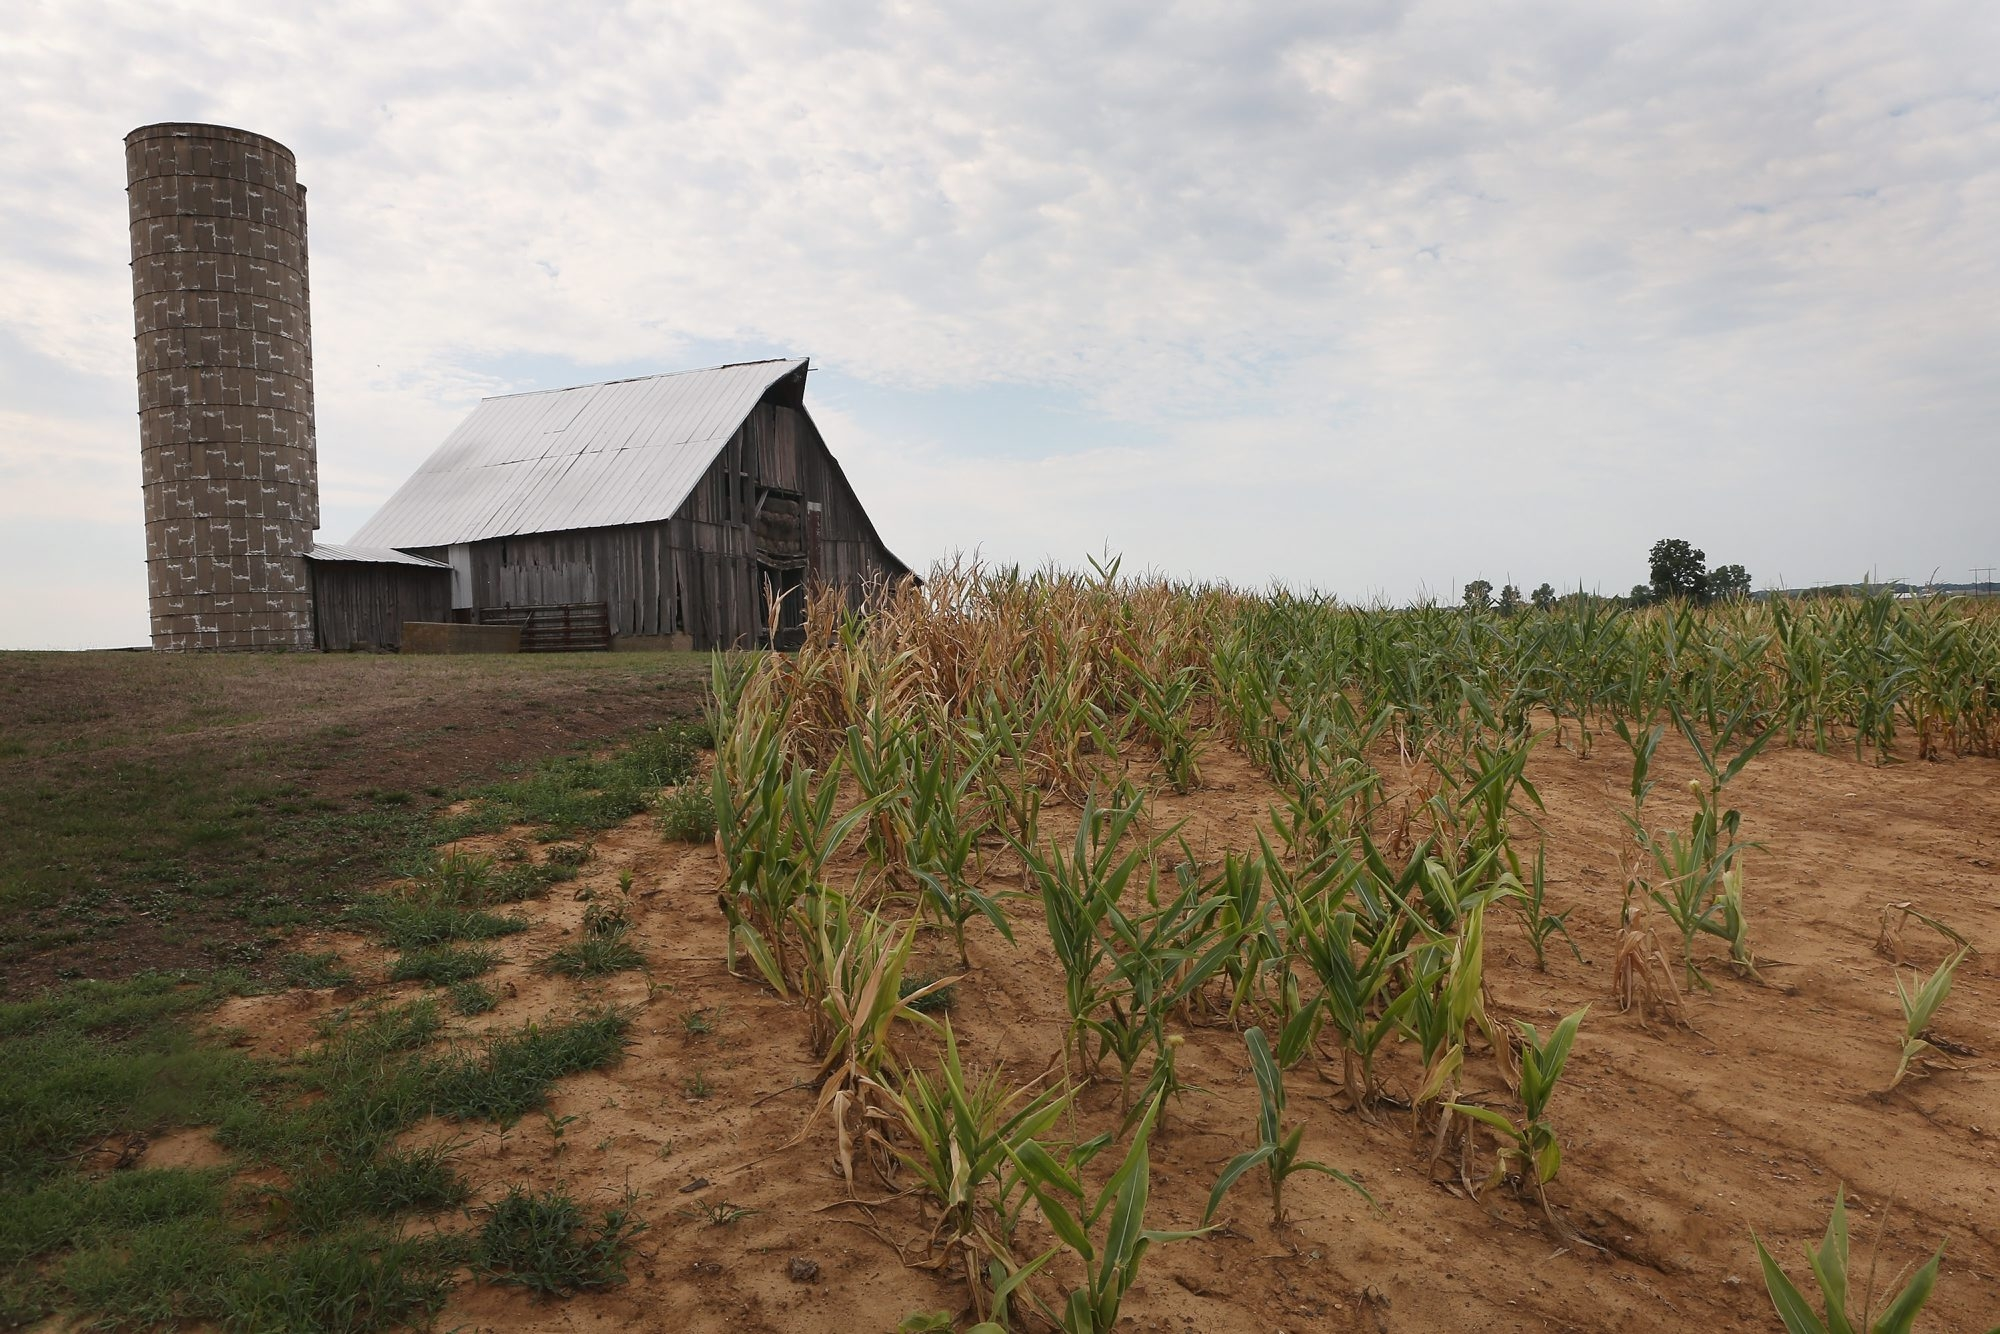 Getty Images    Drought-stricken corn struggles to survive on a farm near Poseyville, Ind., last month. More than half of the counties in the United States have been designated disaster areas, mostly due to drought conditions throughout the Midwest this summer.